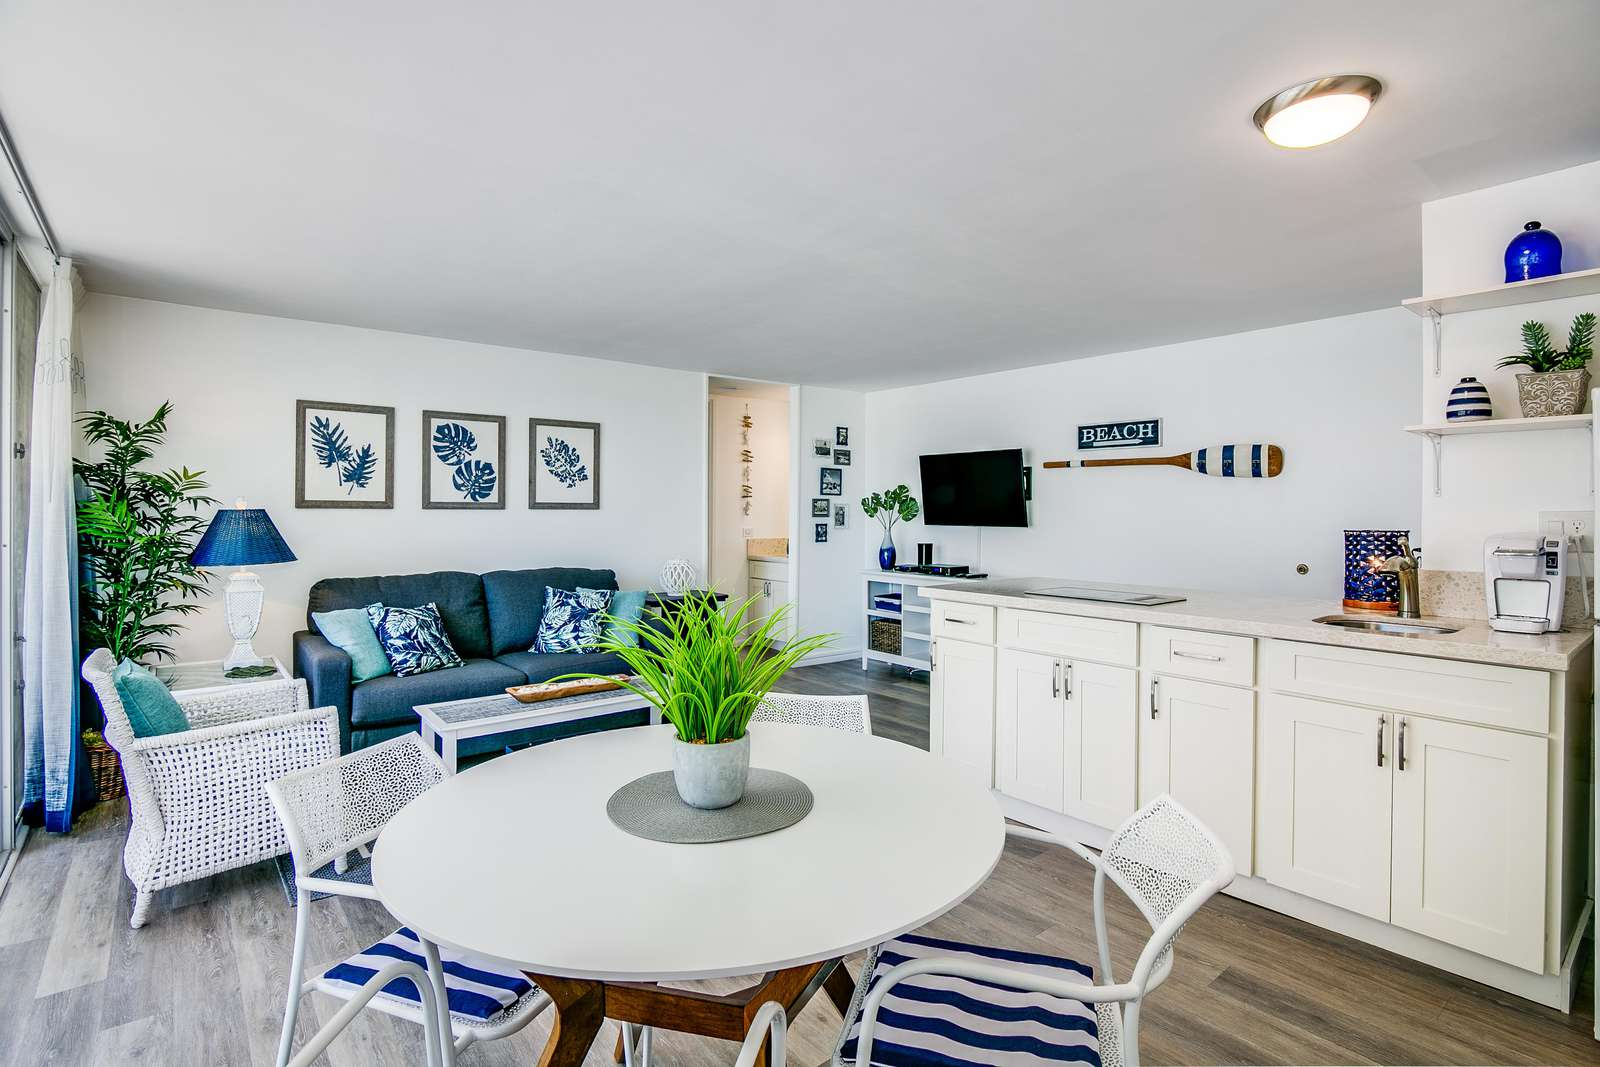 Spacious & Bright Throughout this 1 bedroom Condo